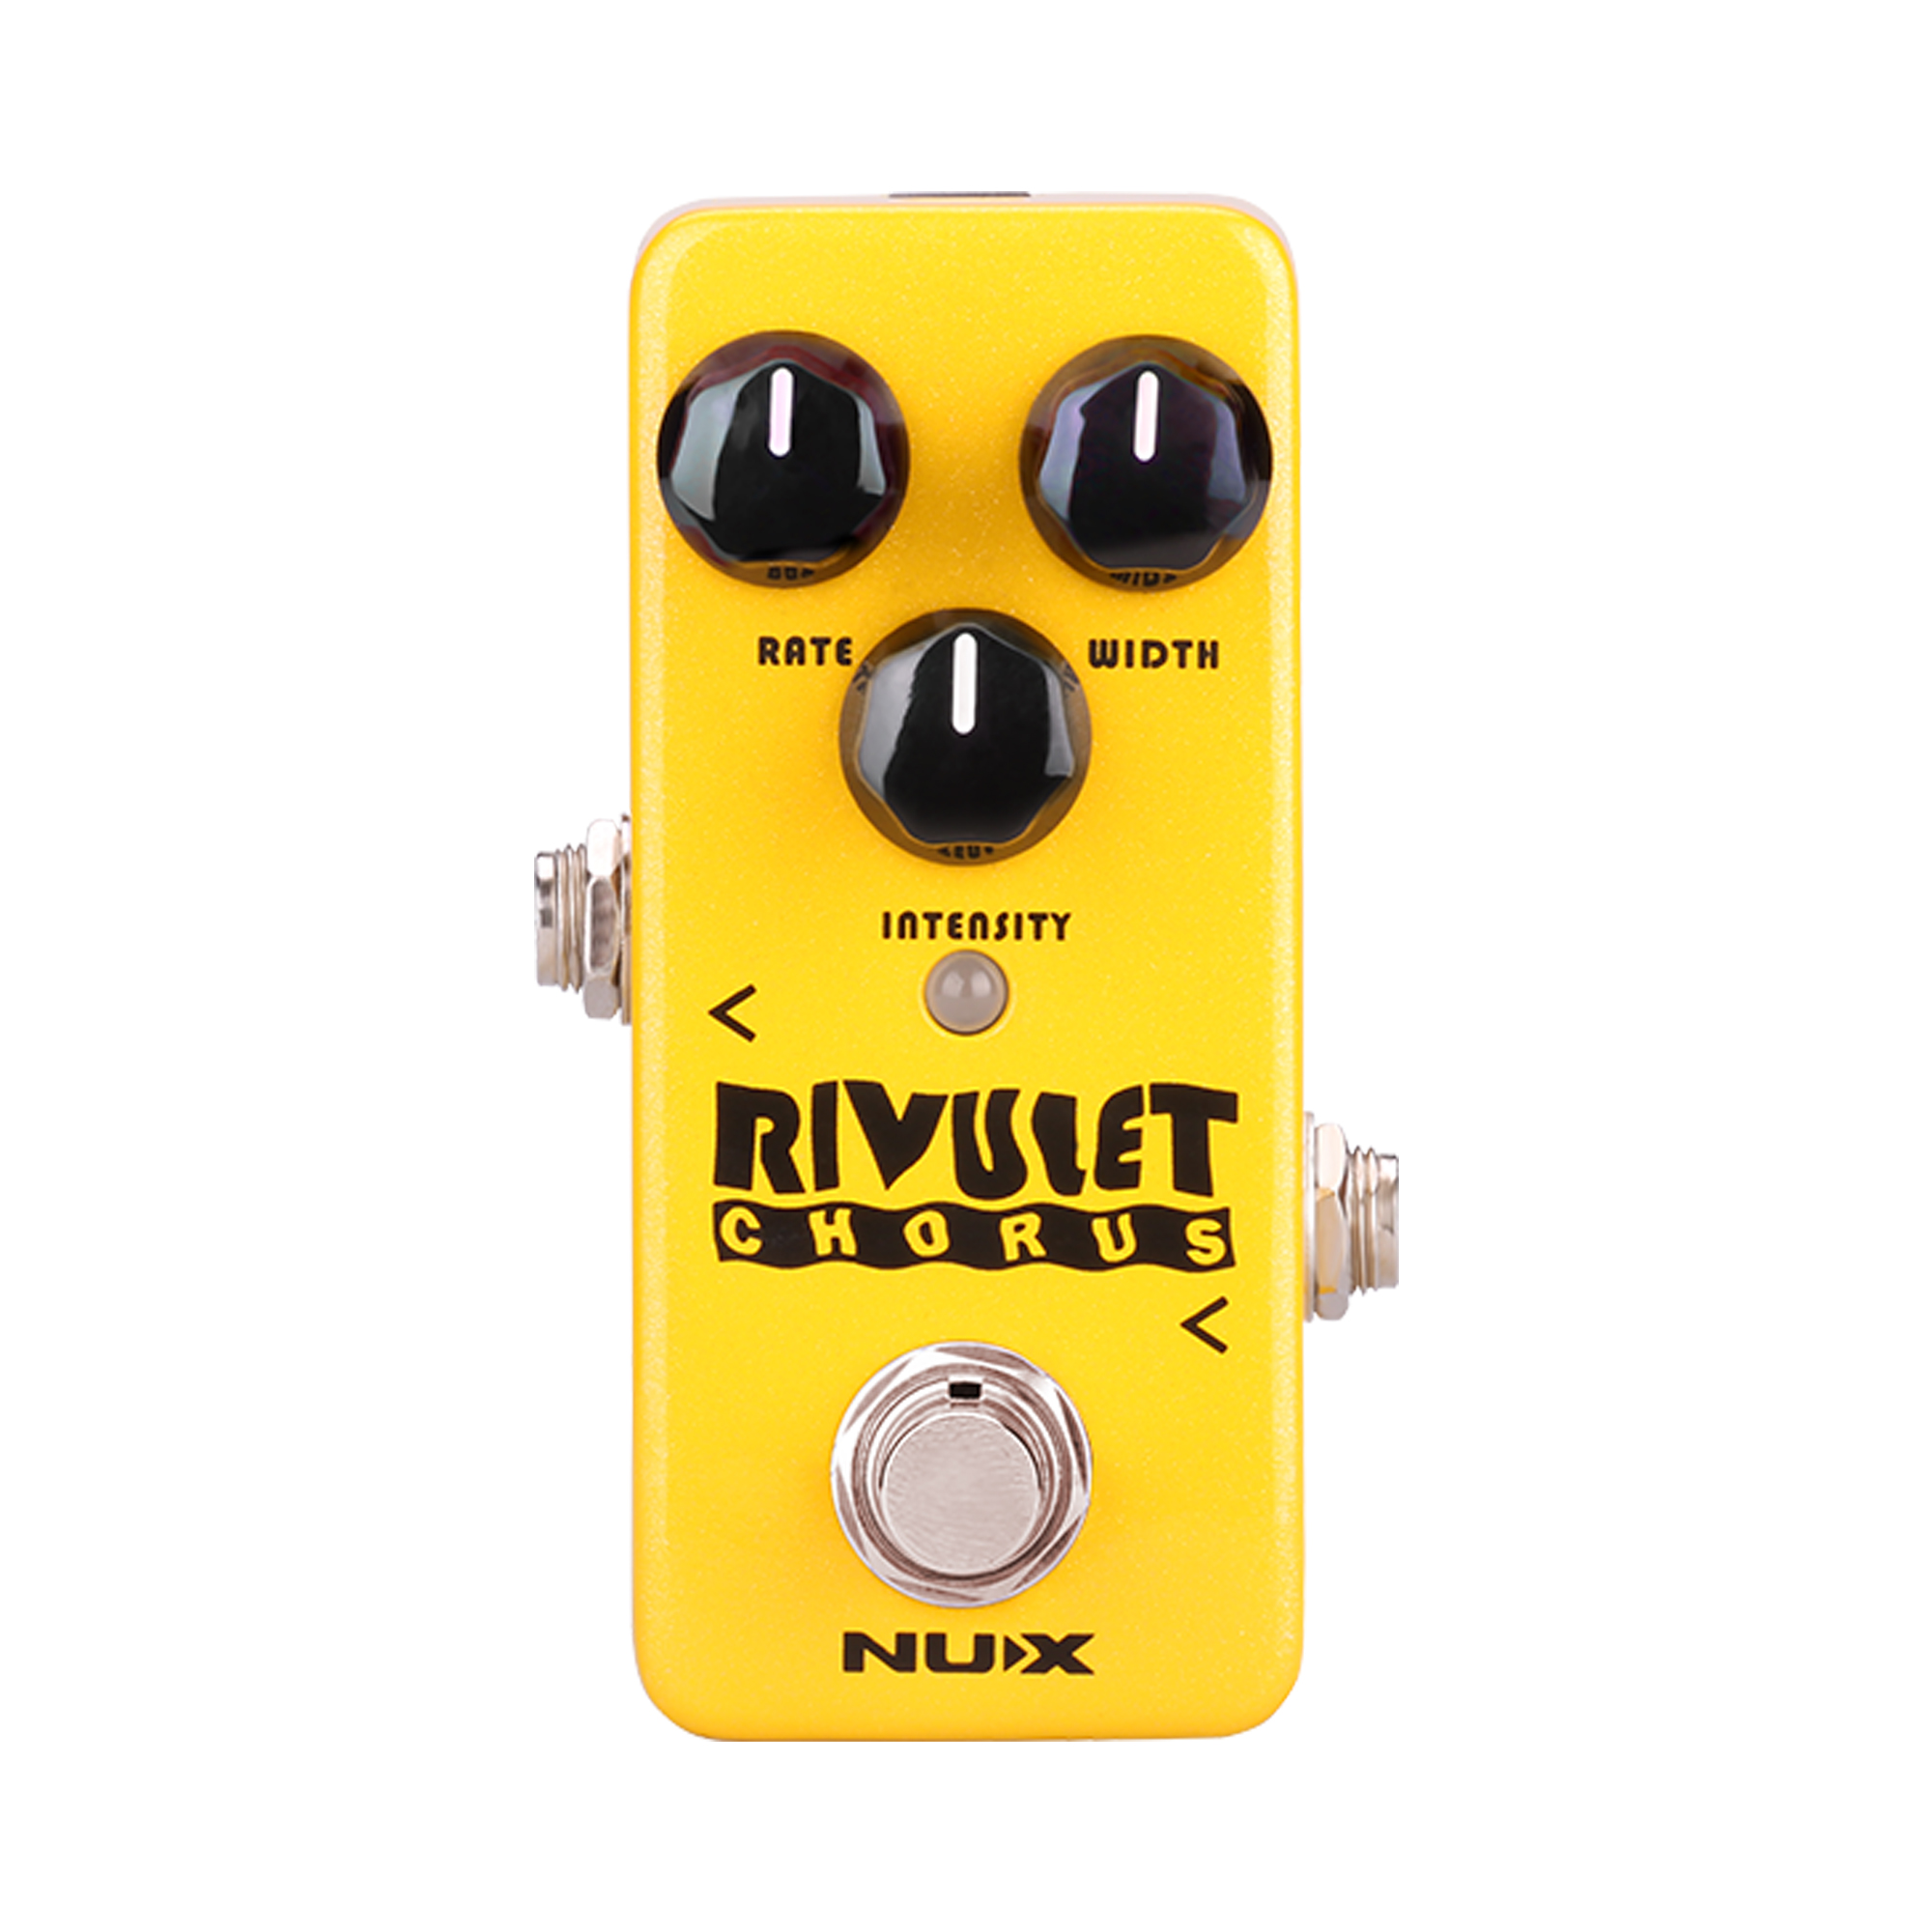 NUX Rivulet Chorus Guitar Effect Pedal Mini Core Series Stompbox Old-school Analog Chorus 3 Essential Choices DSP technology nux pmx 2 multi channel mini mixer 30